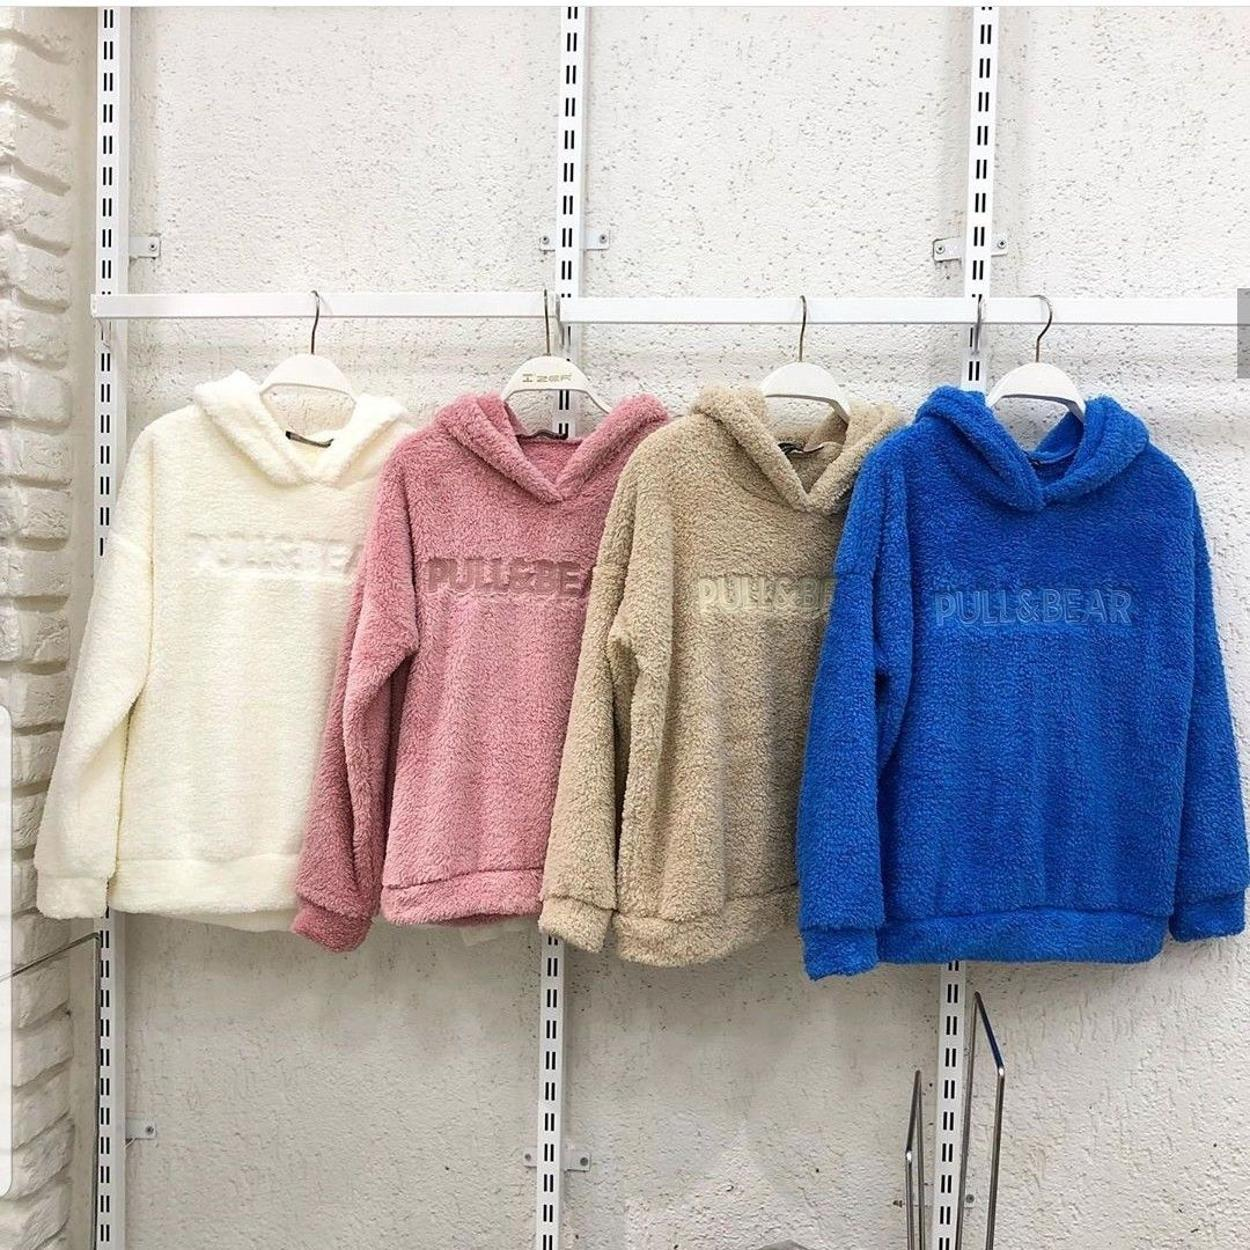 Pull & Bear Sweatshirt